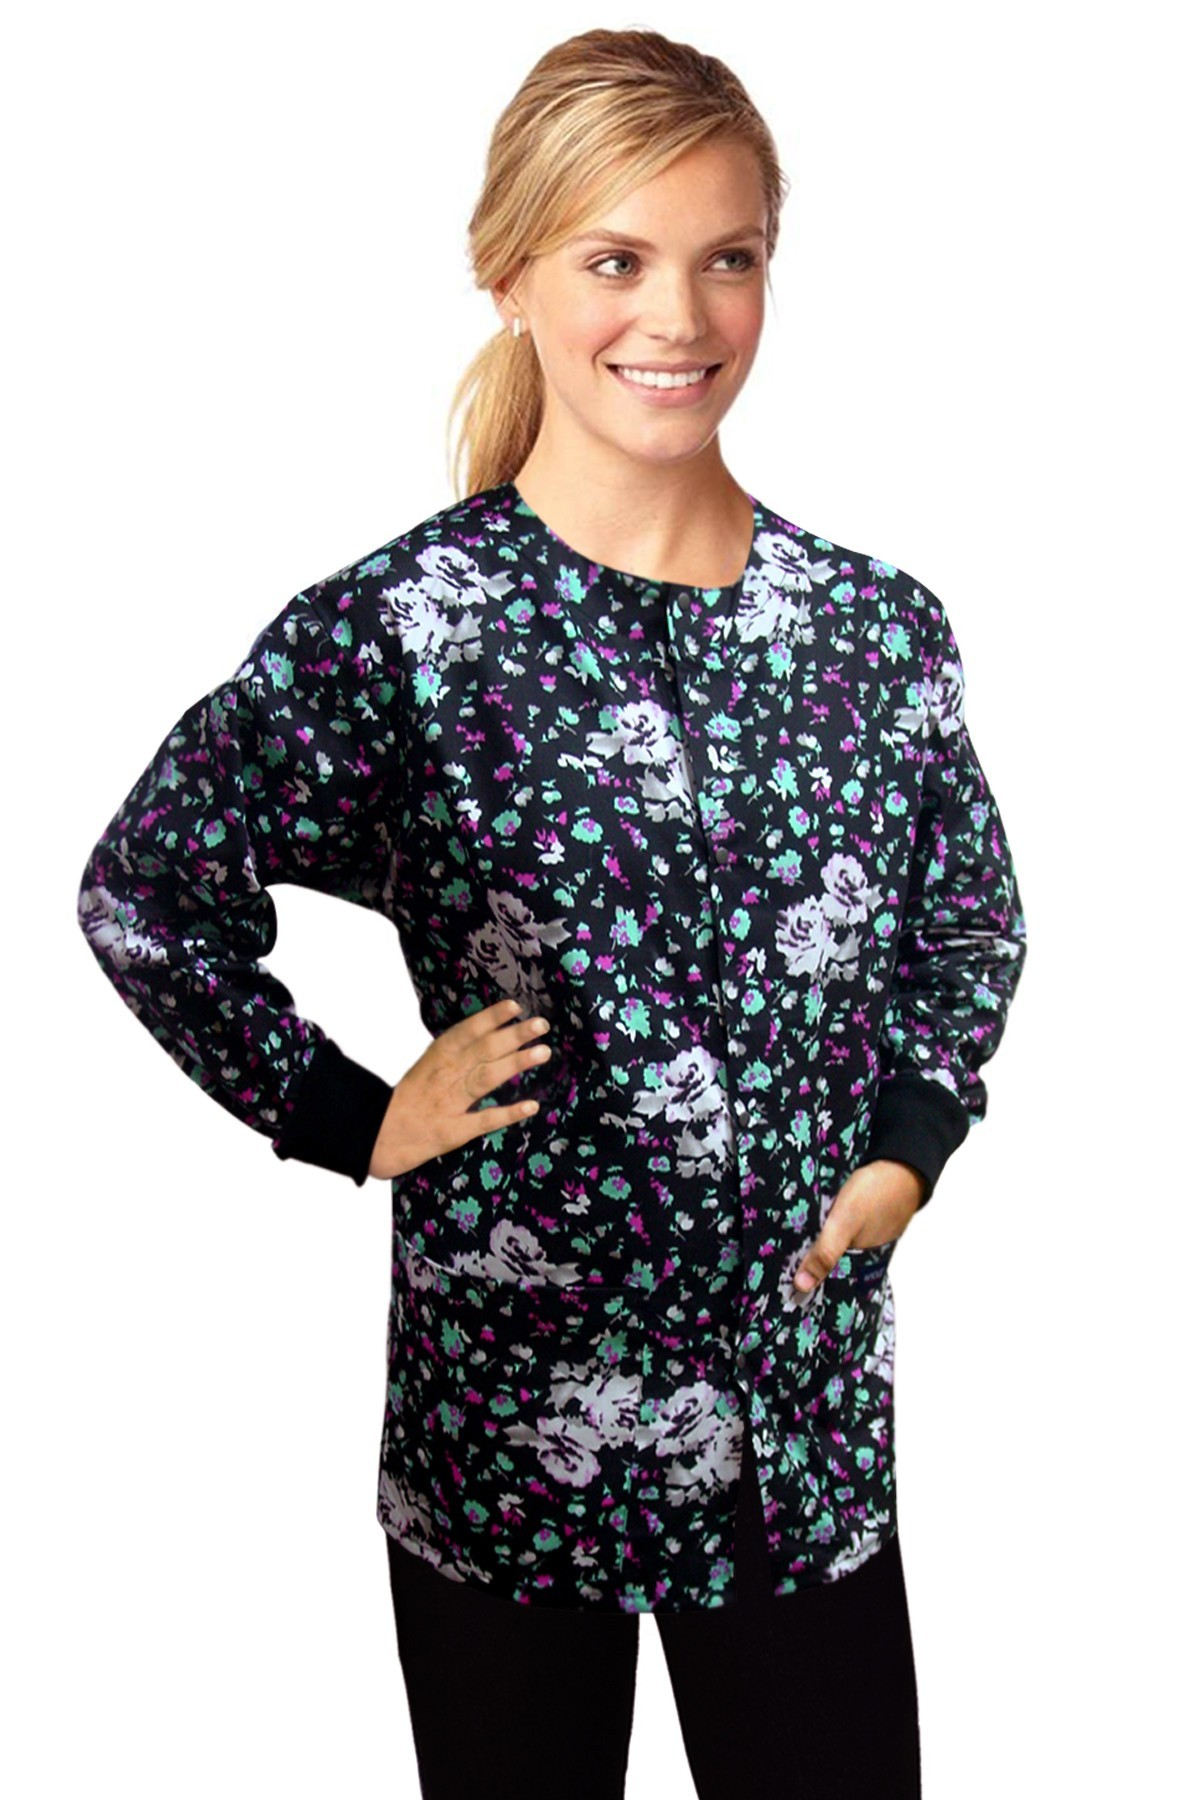 Jacket 2 pocket printed unisex full sleeve in white flower and black print with rib